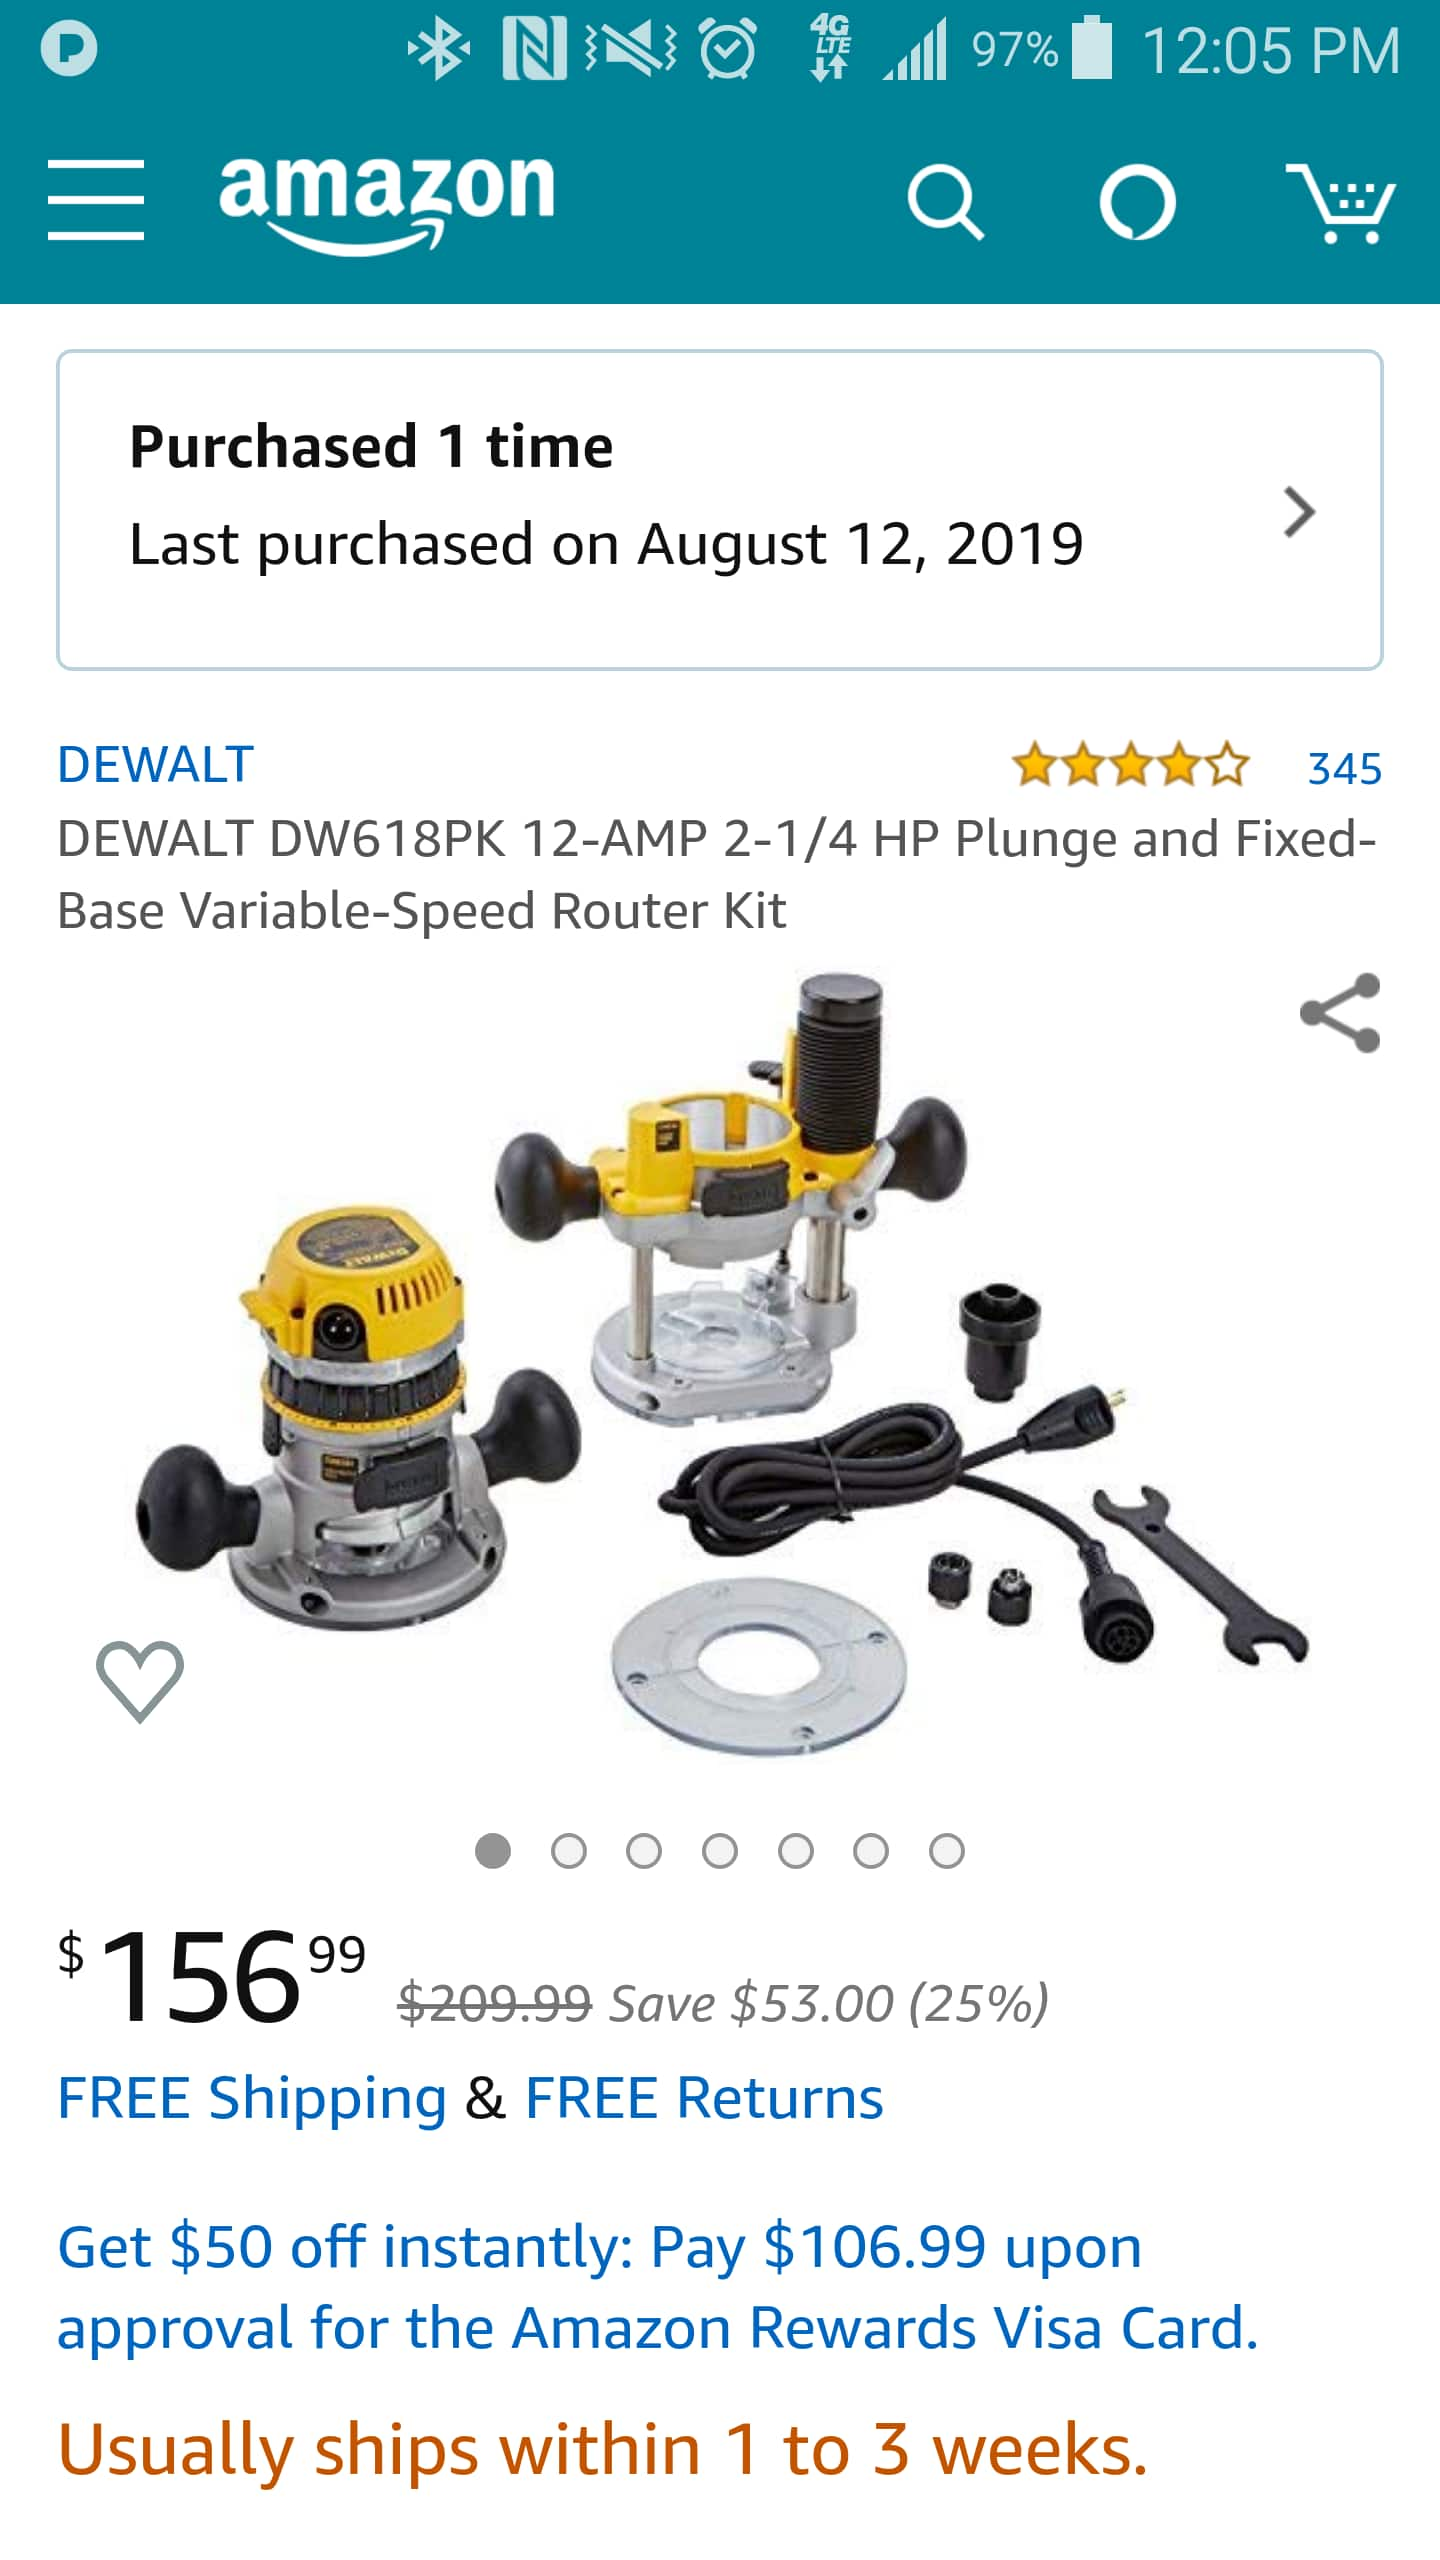 DEWALT DW618PK 12-AMP 2-1/4 HP Plunge and Fixed-Base Variable-Speed Router Kit $156.99